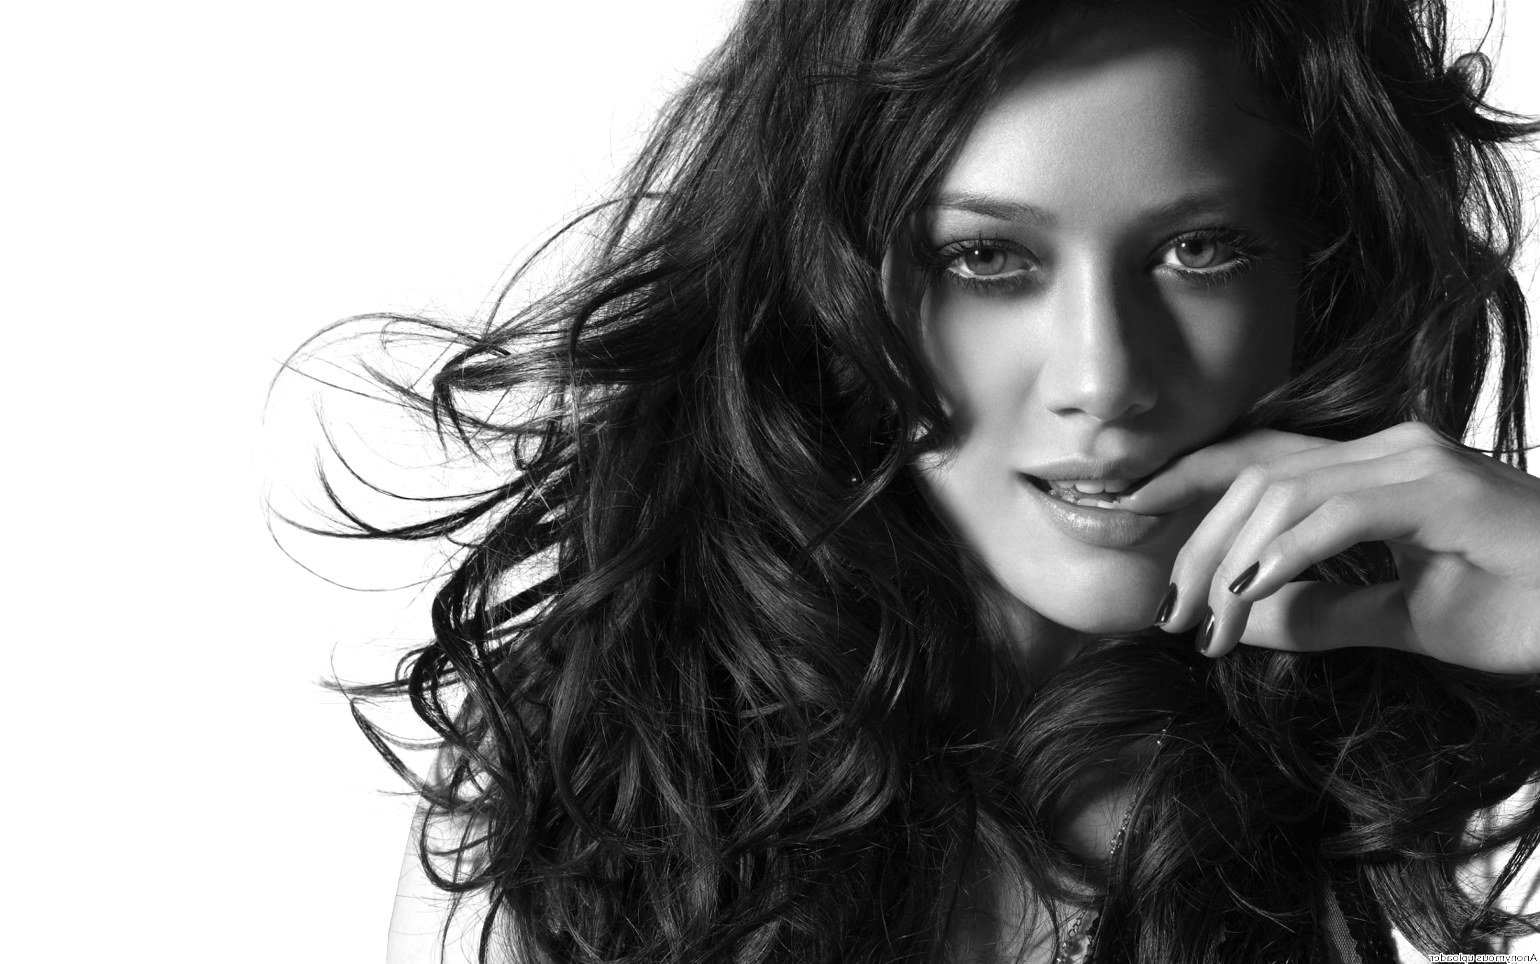 Beautiful girl png. Transparent images all image